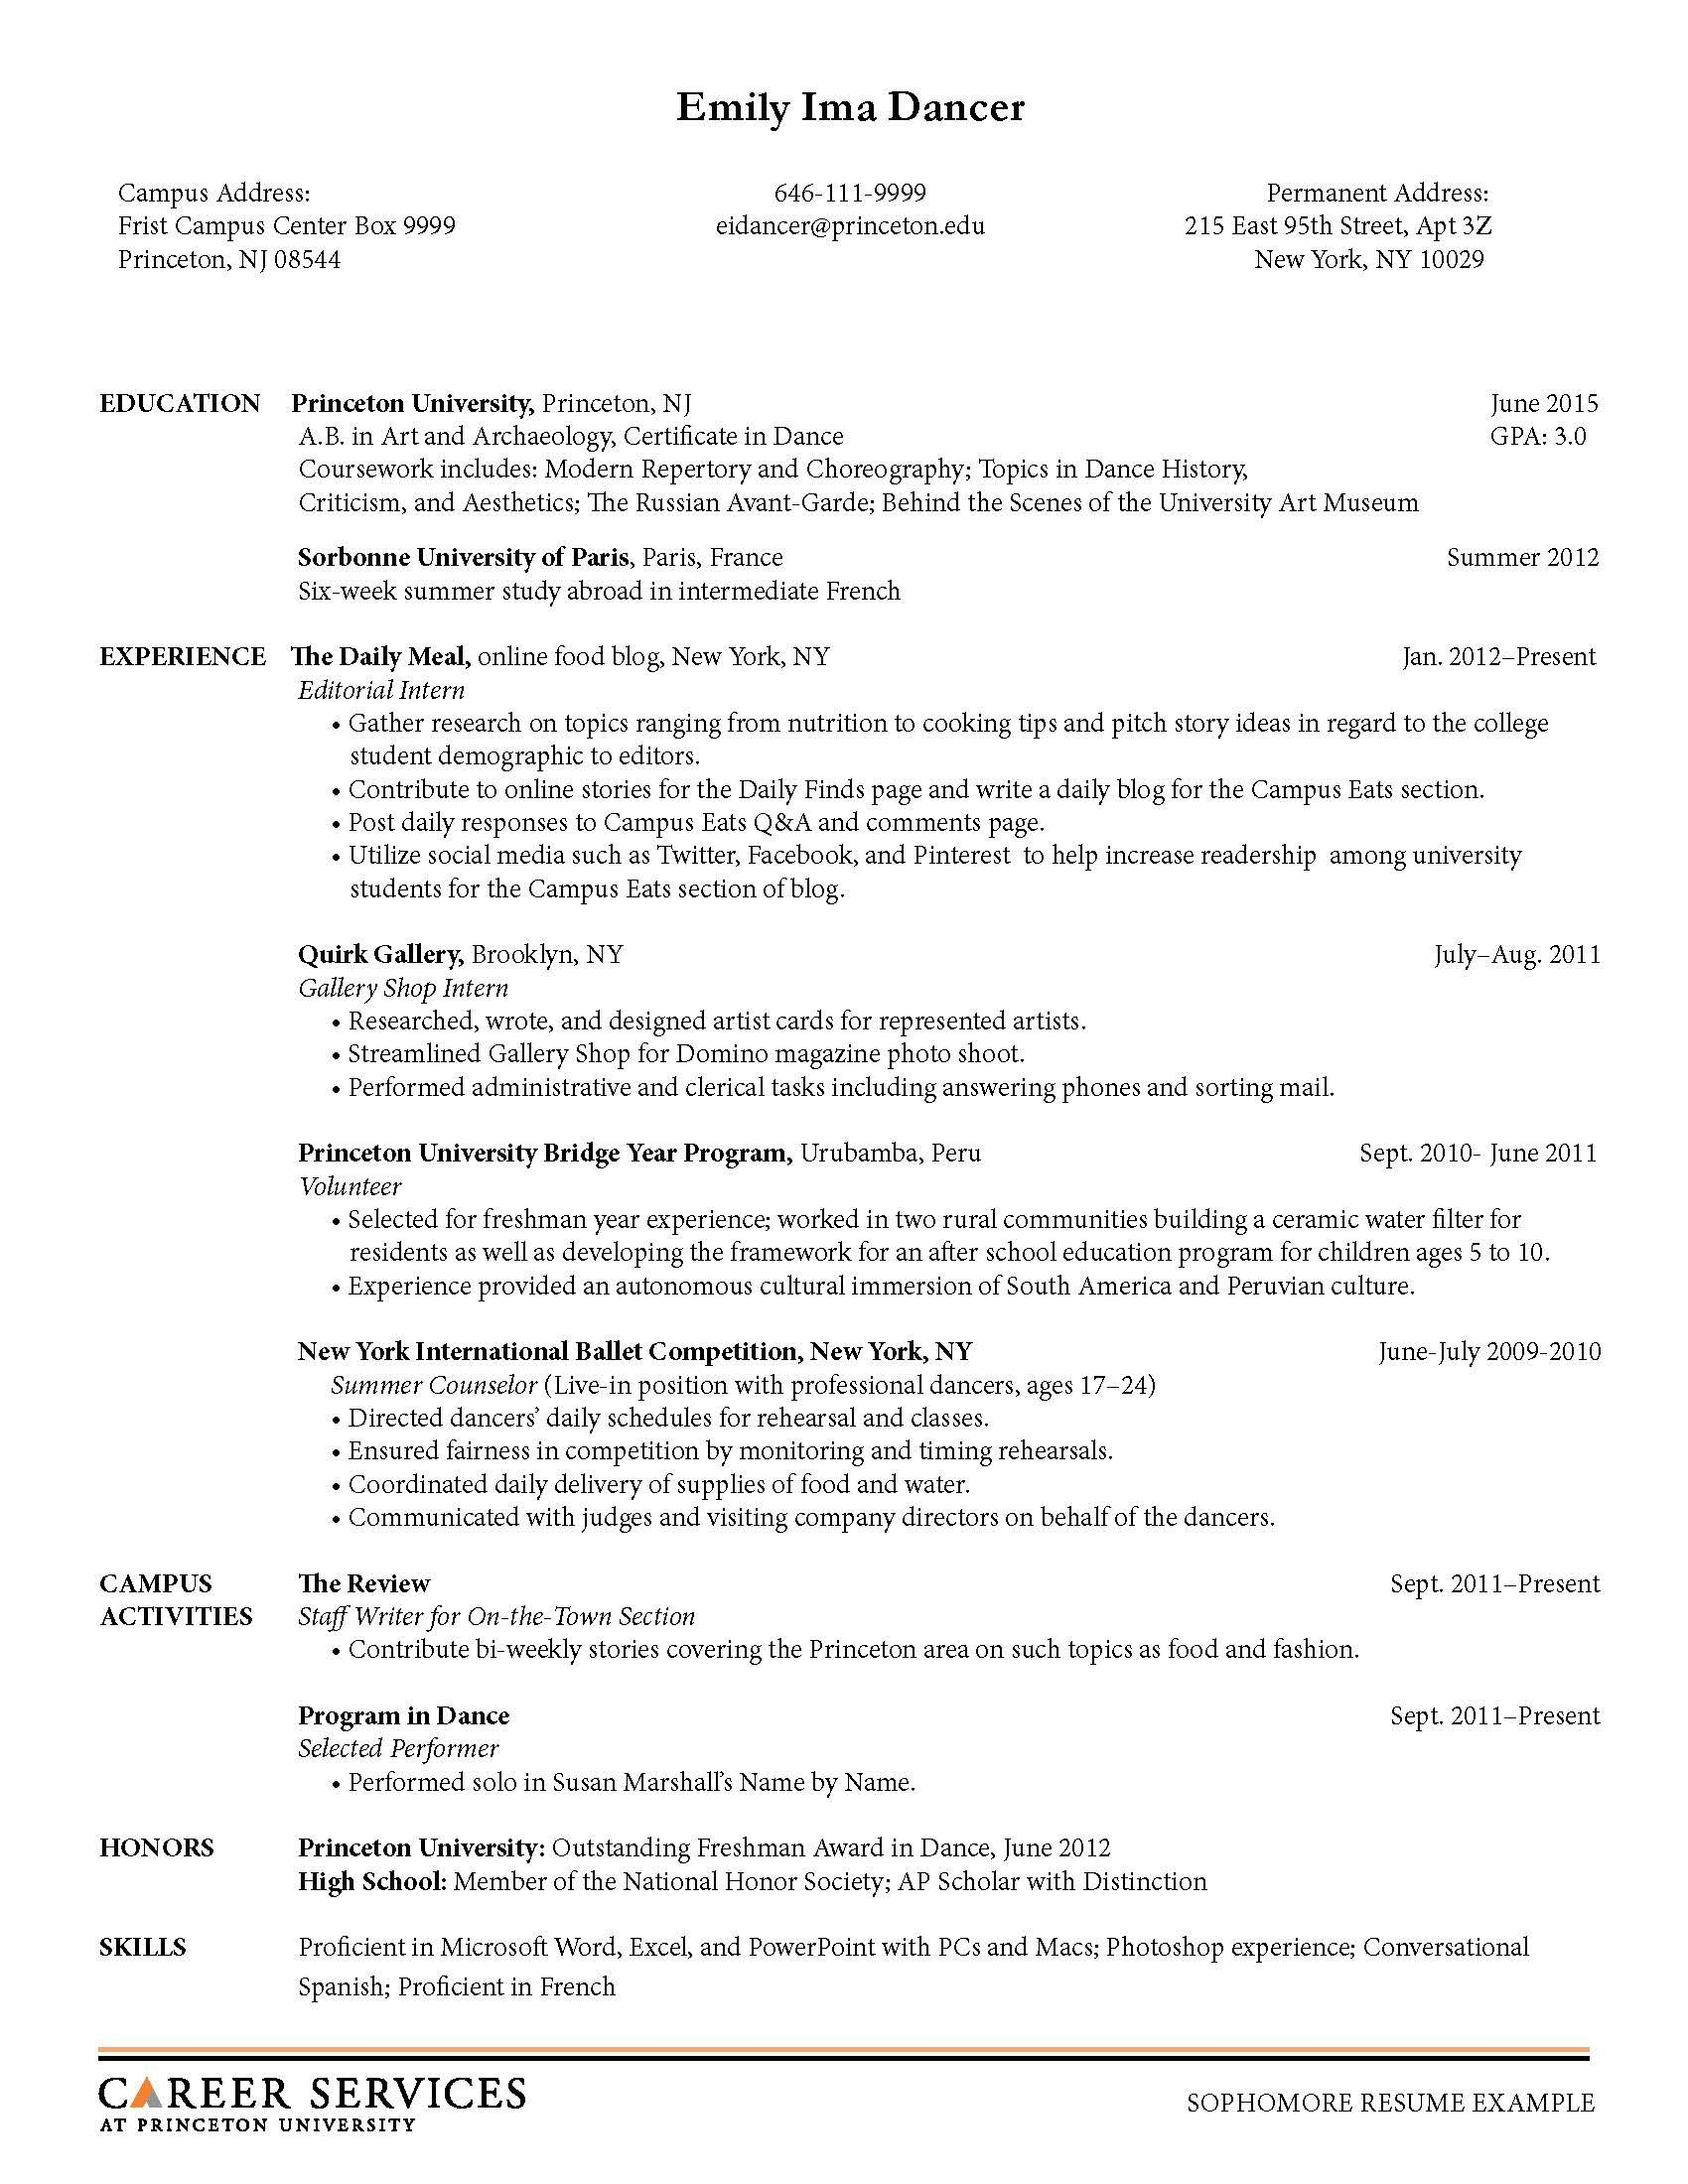 Picnictoimpeachus  Fascinating Sample Resume Resume And Career On Pinterest With Exquisite Excel Resume Template Besides Sas Resume Furthermore Good Words For Resumes With Astounding Undergrad Resume Also Resume Restaurant Server In Addition Art Resumes And Chronological Resume Templates As Well As Video Resume Website Additionally Patient Coordinator Resume From Pinterestcom With Picnictoimpeachus  Exquisite Sample Resume Resume And Career On Pinterest With Astounding Excel Resume Template Besides Sas Resume Furthermore Good Words For Resumes And Fascinating Undergrad Resume Also Resume Restaurant Server In Addition Art Resumes From Pinterestcom